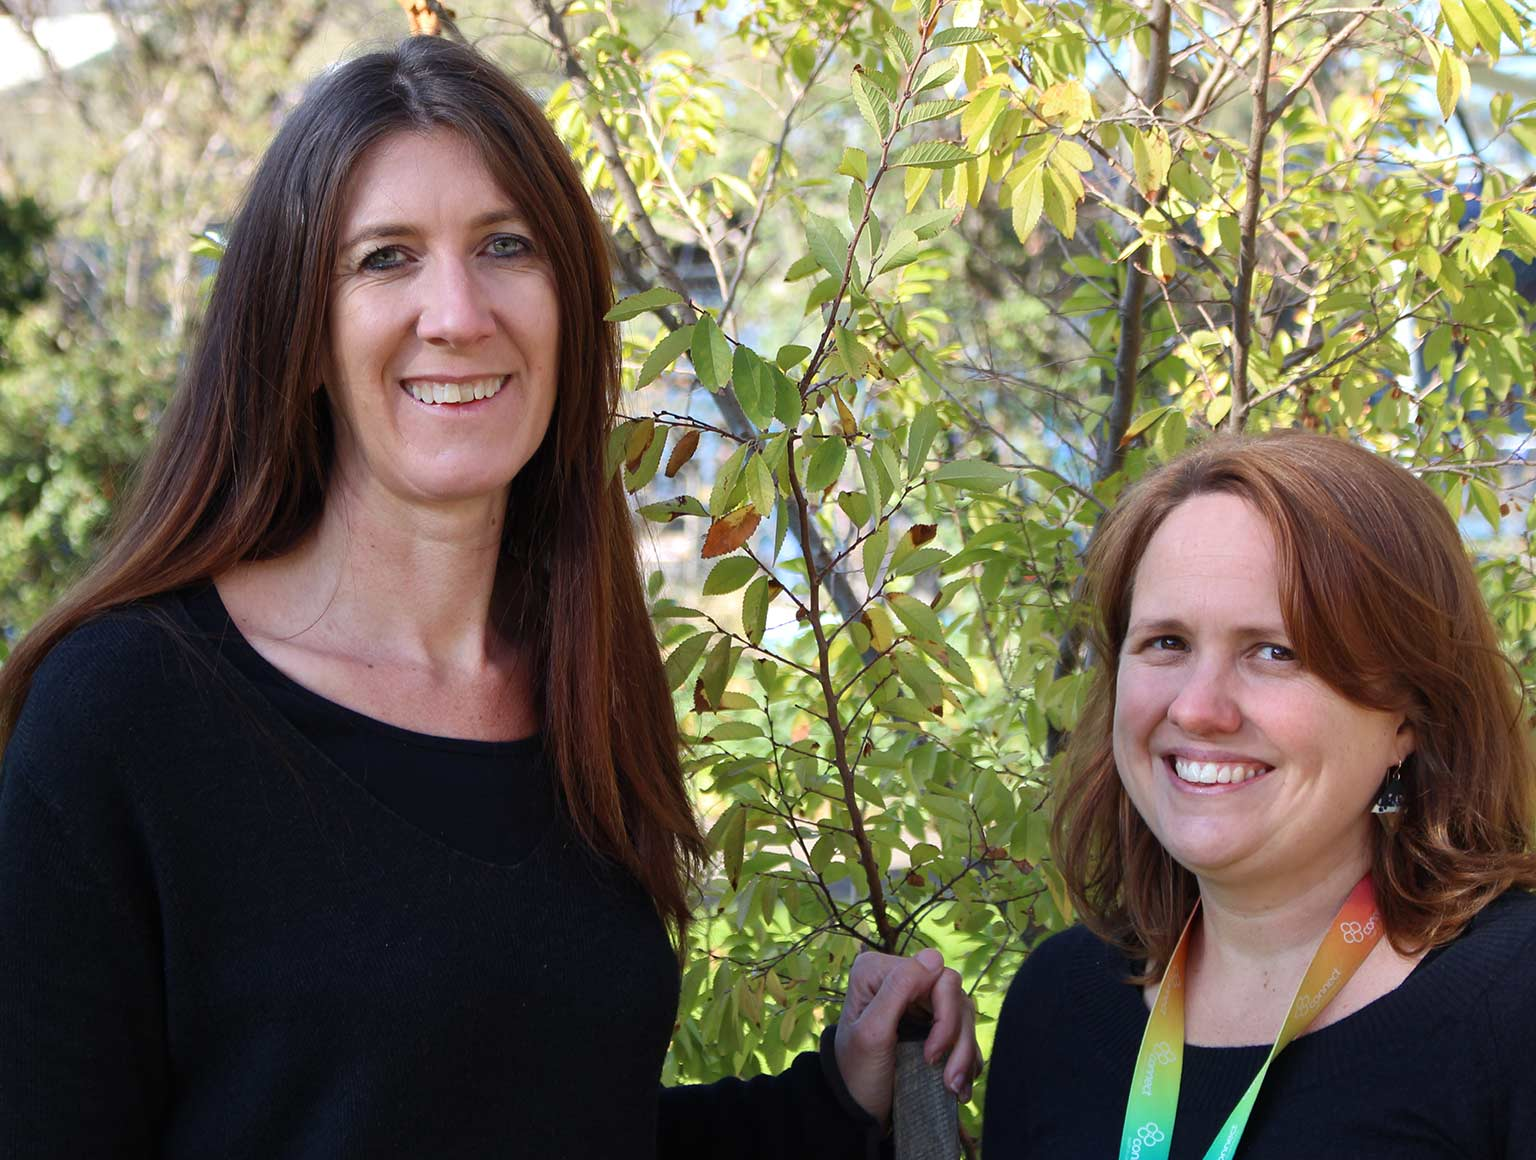 Two women in black smiling at the camera in front of some greenery, one tall with long hair while the shorter woman has red hair.